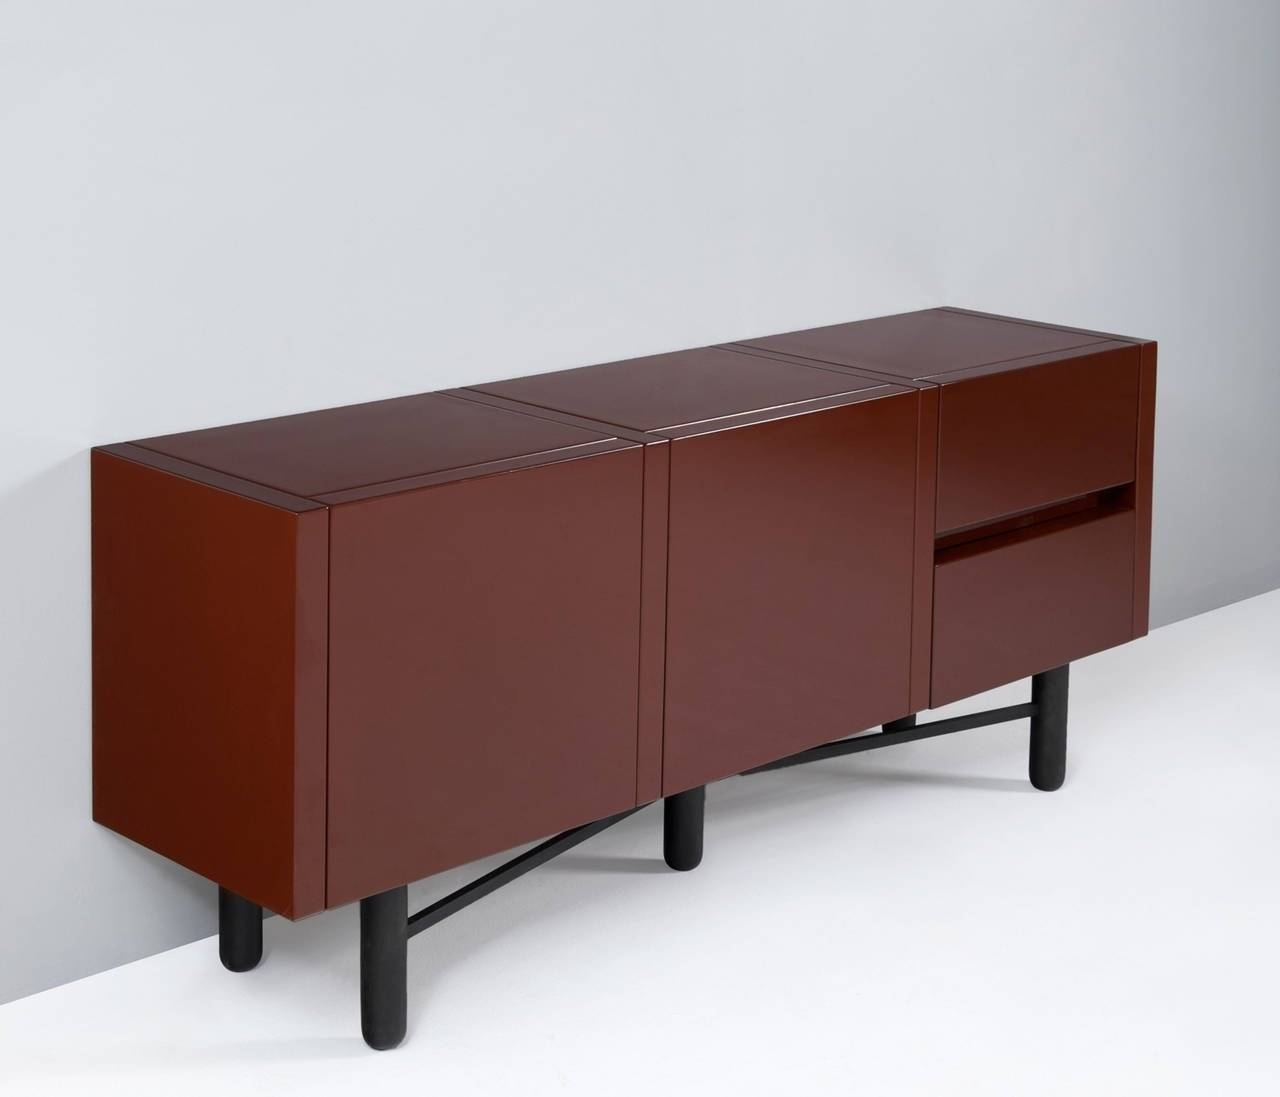 Roche Bobois Red Lacquered High Gloss Sideboard For Sale At 1Stdibs Inside Black High Gloss Sideboards (#17 of 20)